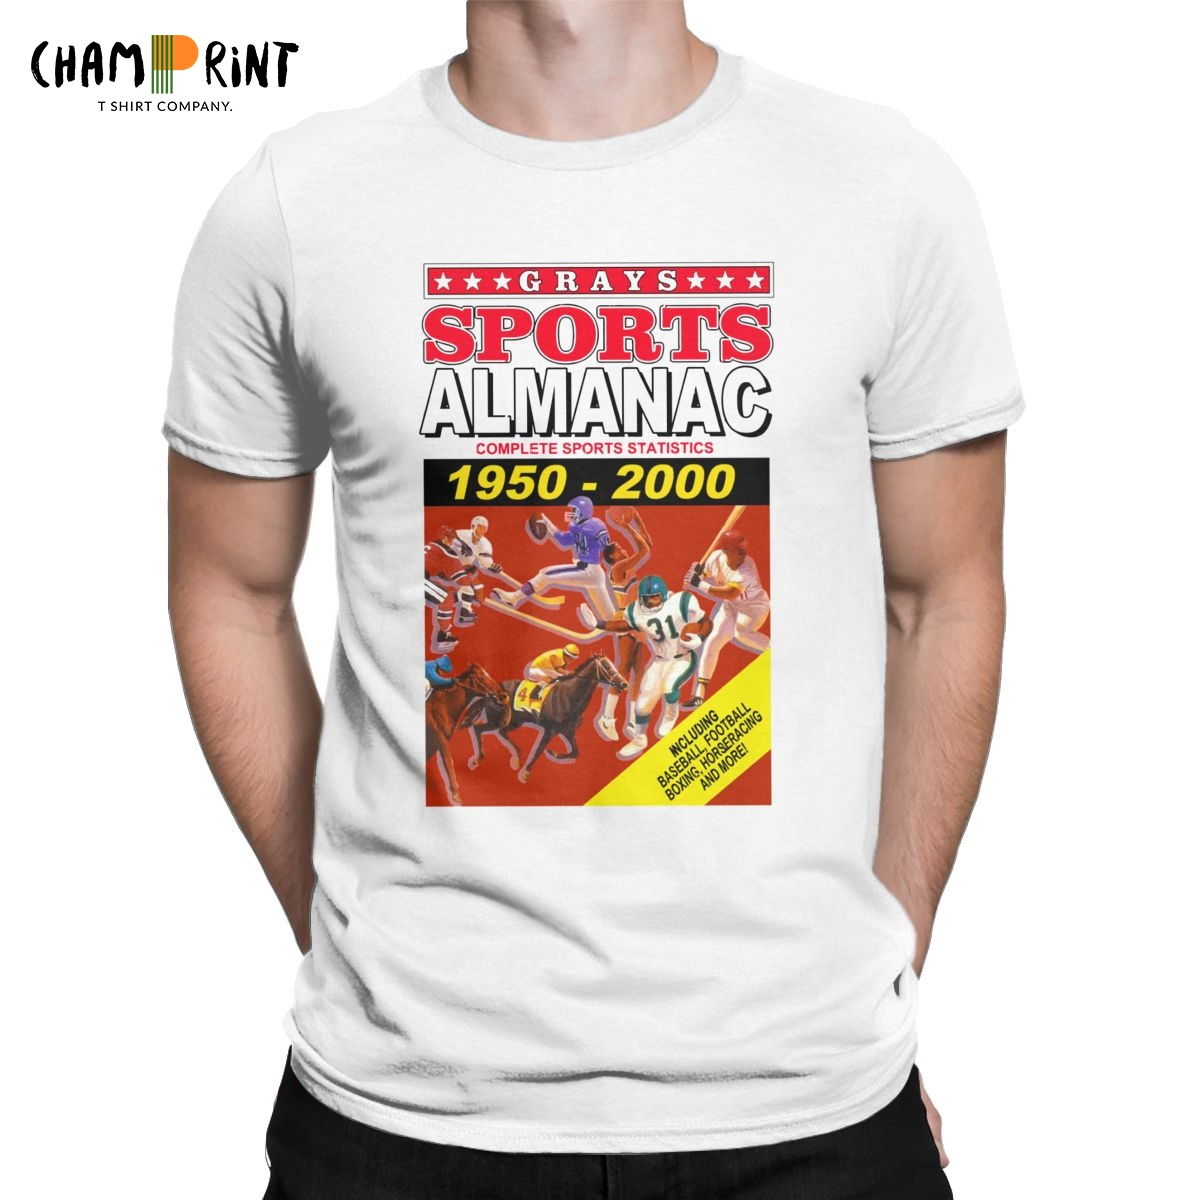 Sports Almanac 1950 - 2000 Men T Shirts Back To The Future Vintage Tee Shirt Short Sleeve Round Neck T-Shirt Graphic Tops